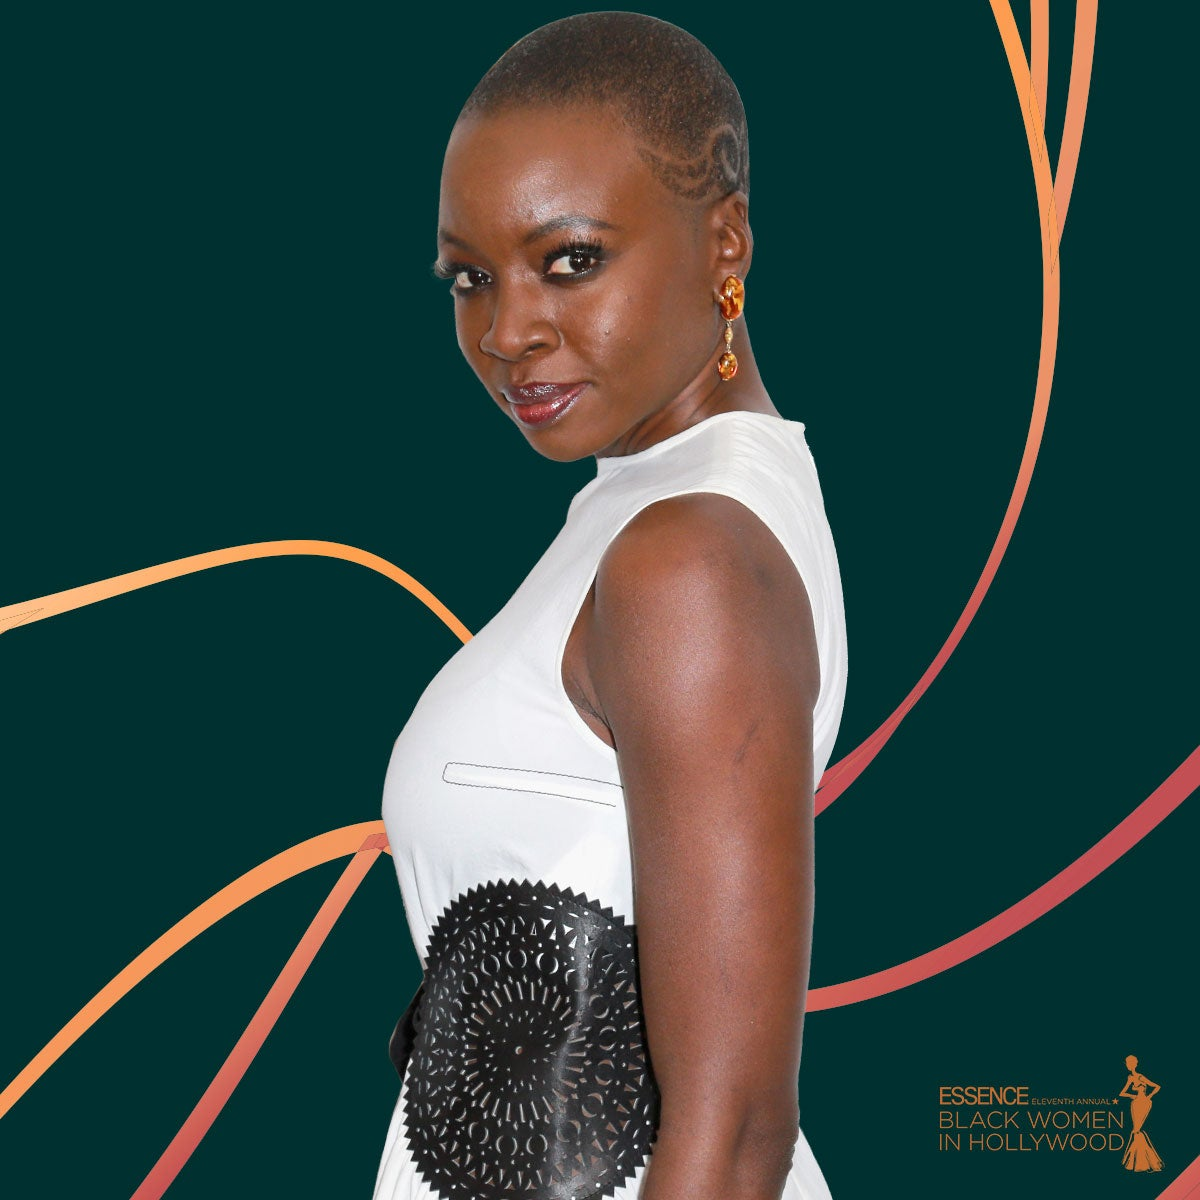 Danai Gurira Beats Out The Boys To Win People's Choice Awards 'Action Movie Star of 2018'